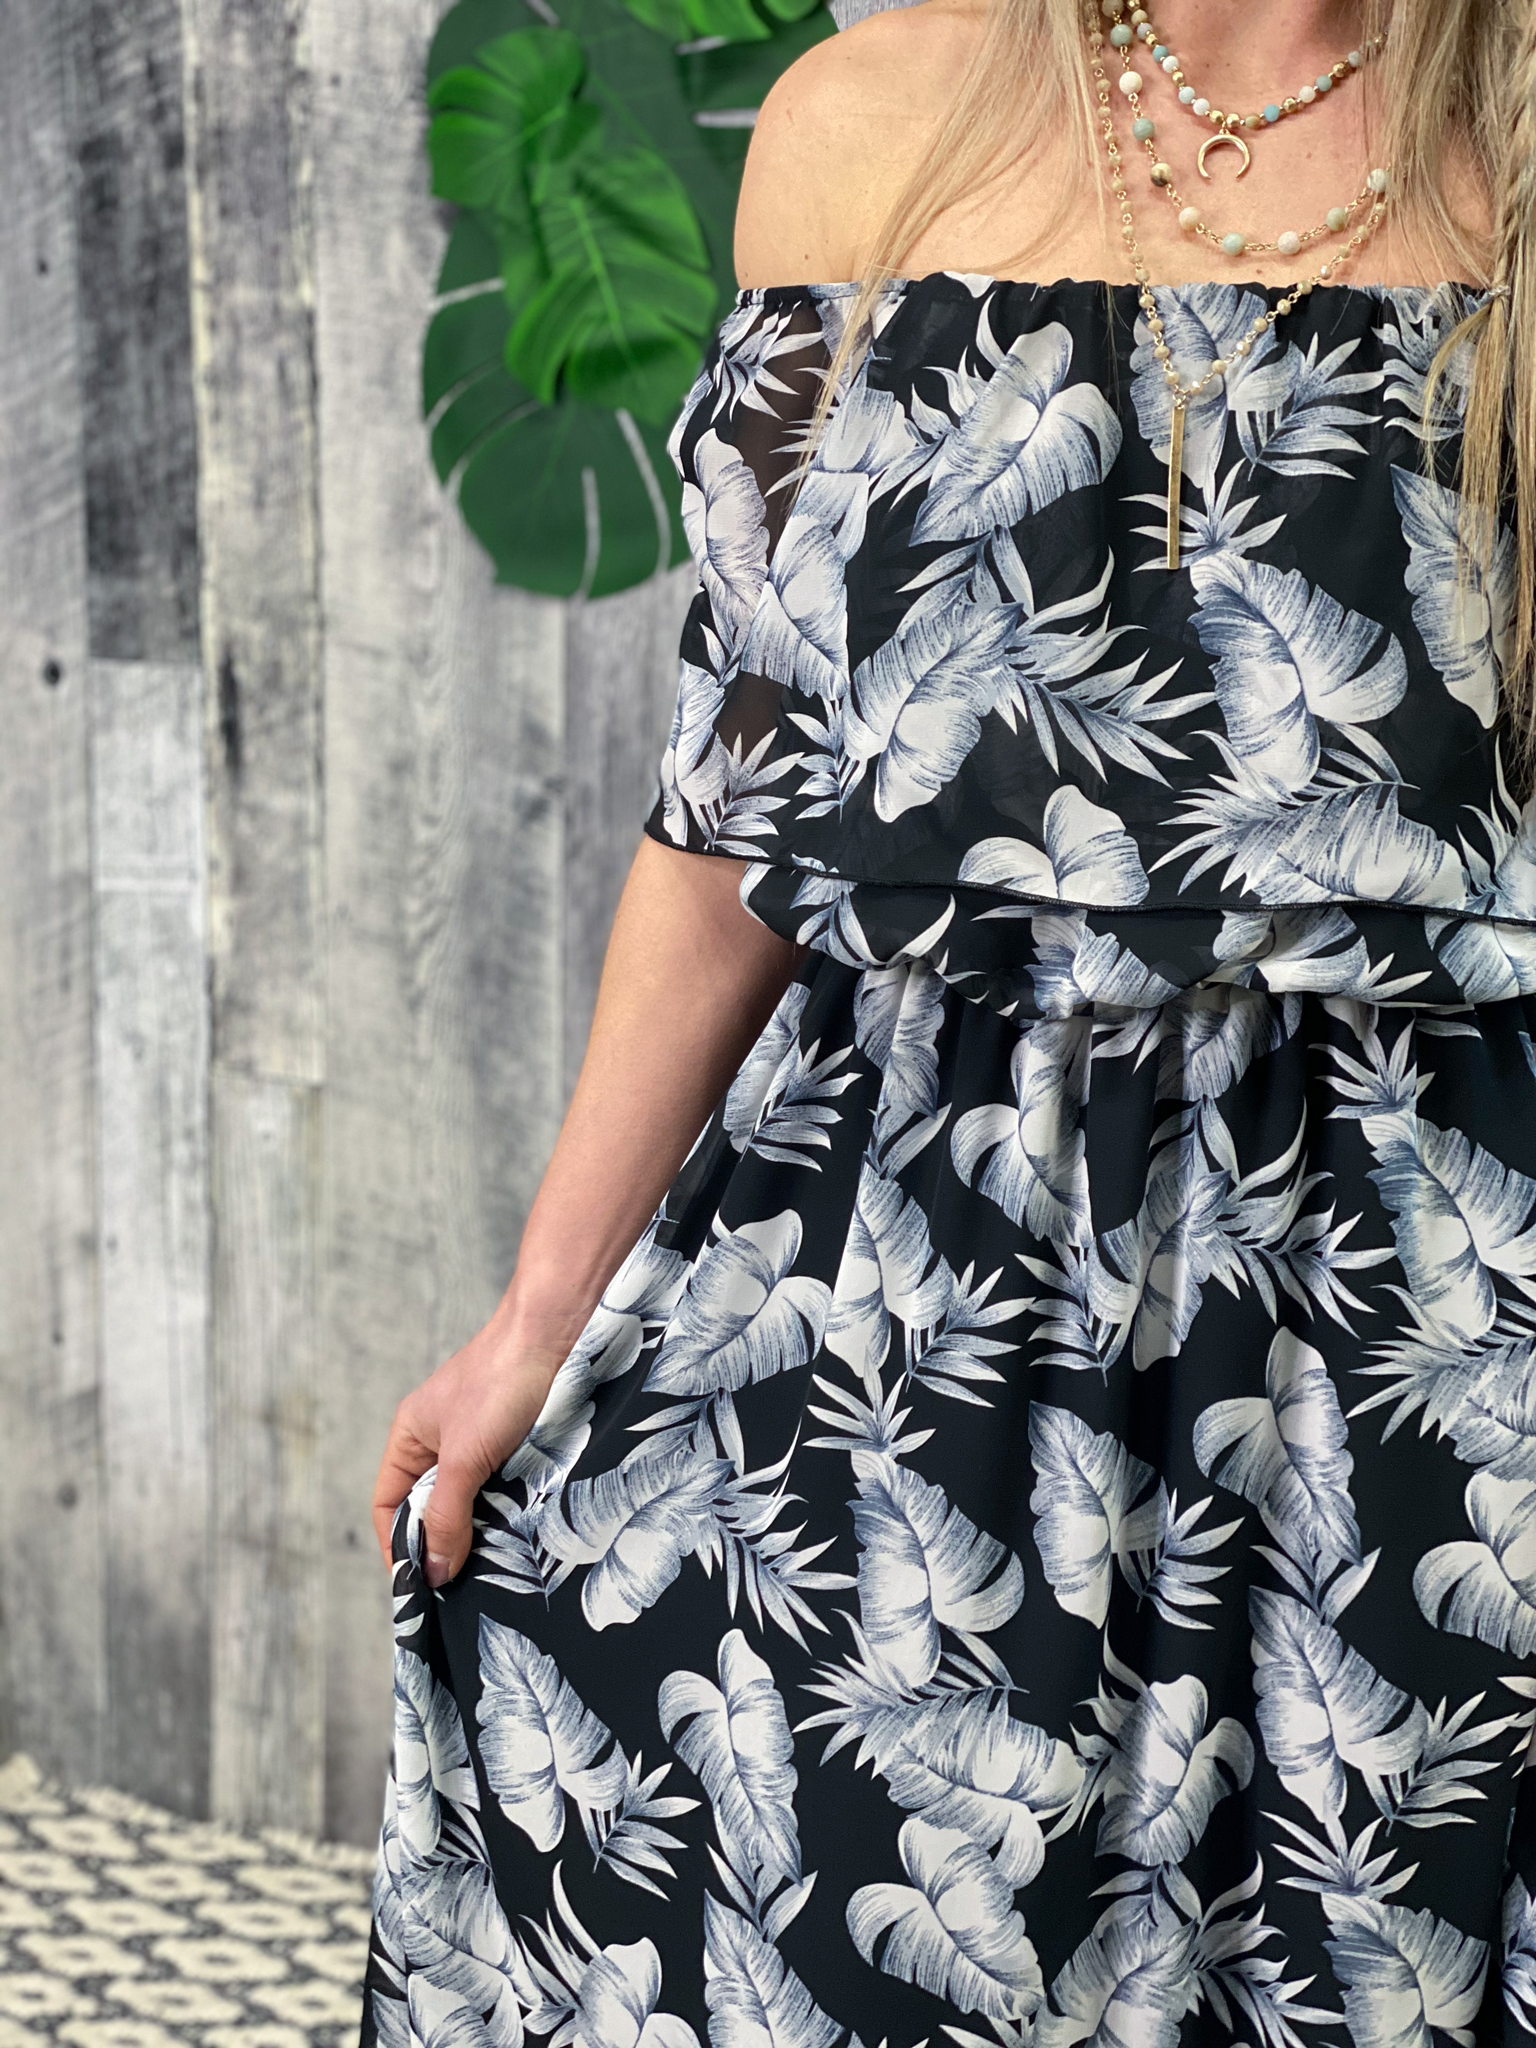 Off shoulder ruffle Black and White Palm Leaf Dress